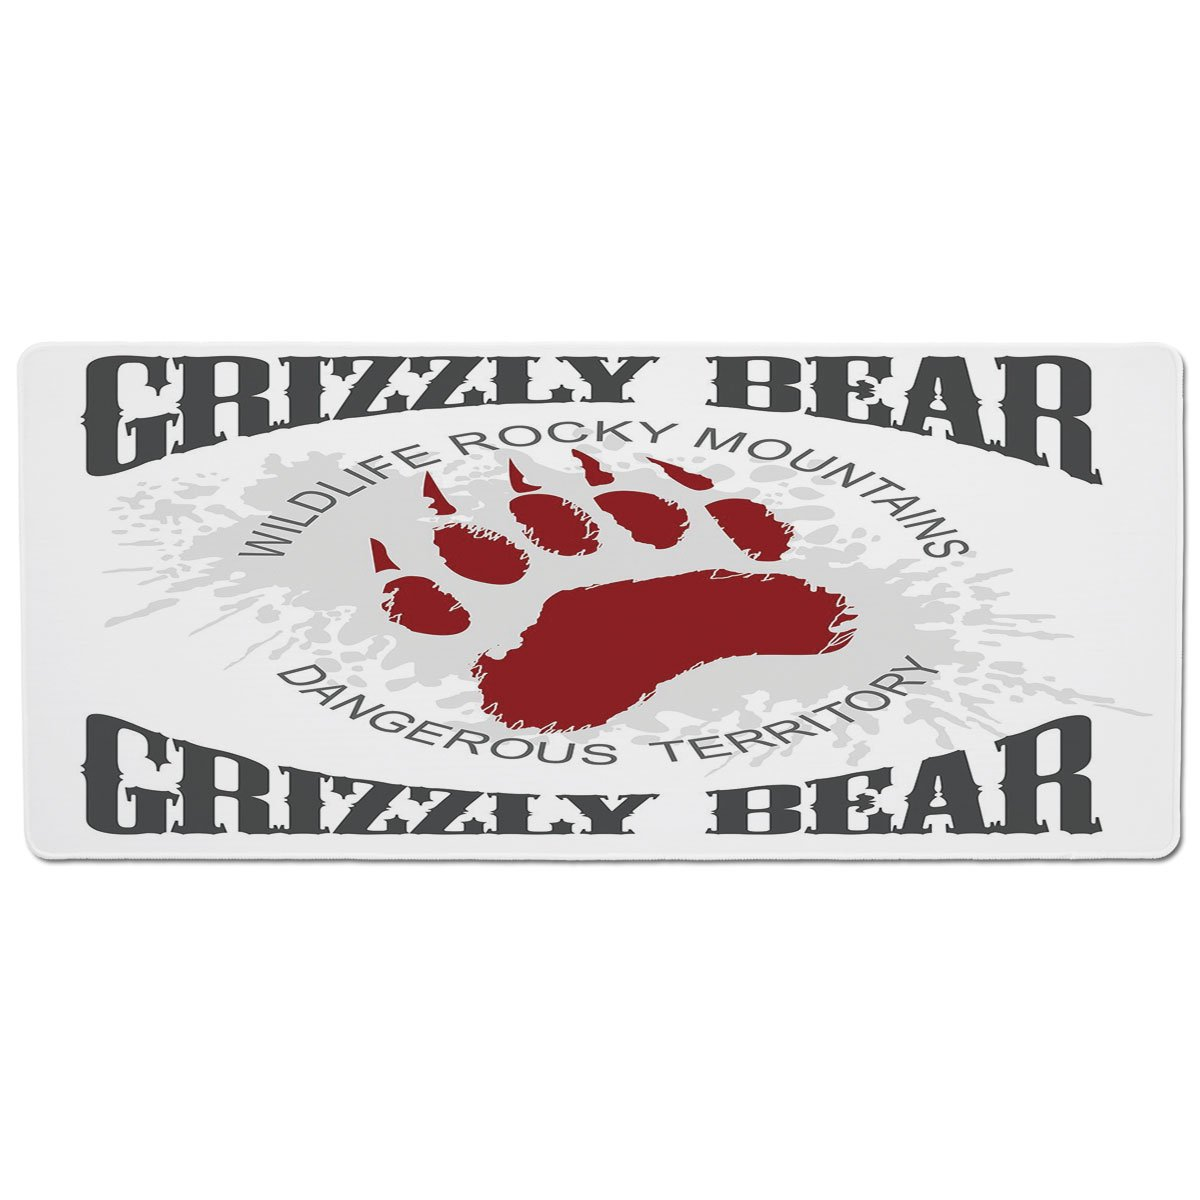 35.4\ Pet Mat for Food and Water,Cabin Decor,Grunge Grizzly Bear Footprint Emblem Dangerous Wildlife Rocky Mountains Decorative,Grey Red White,Rectangle Non-Slip Rubber Mat for Dogs and Cats